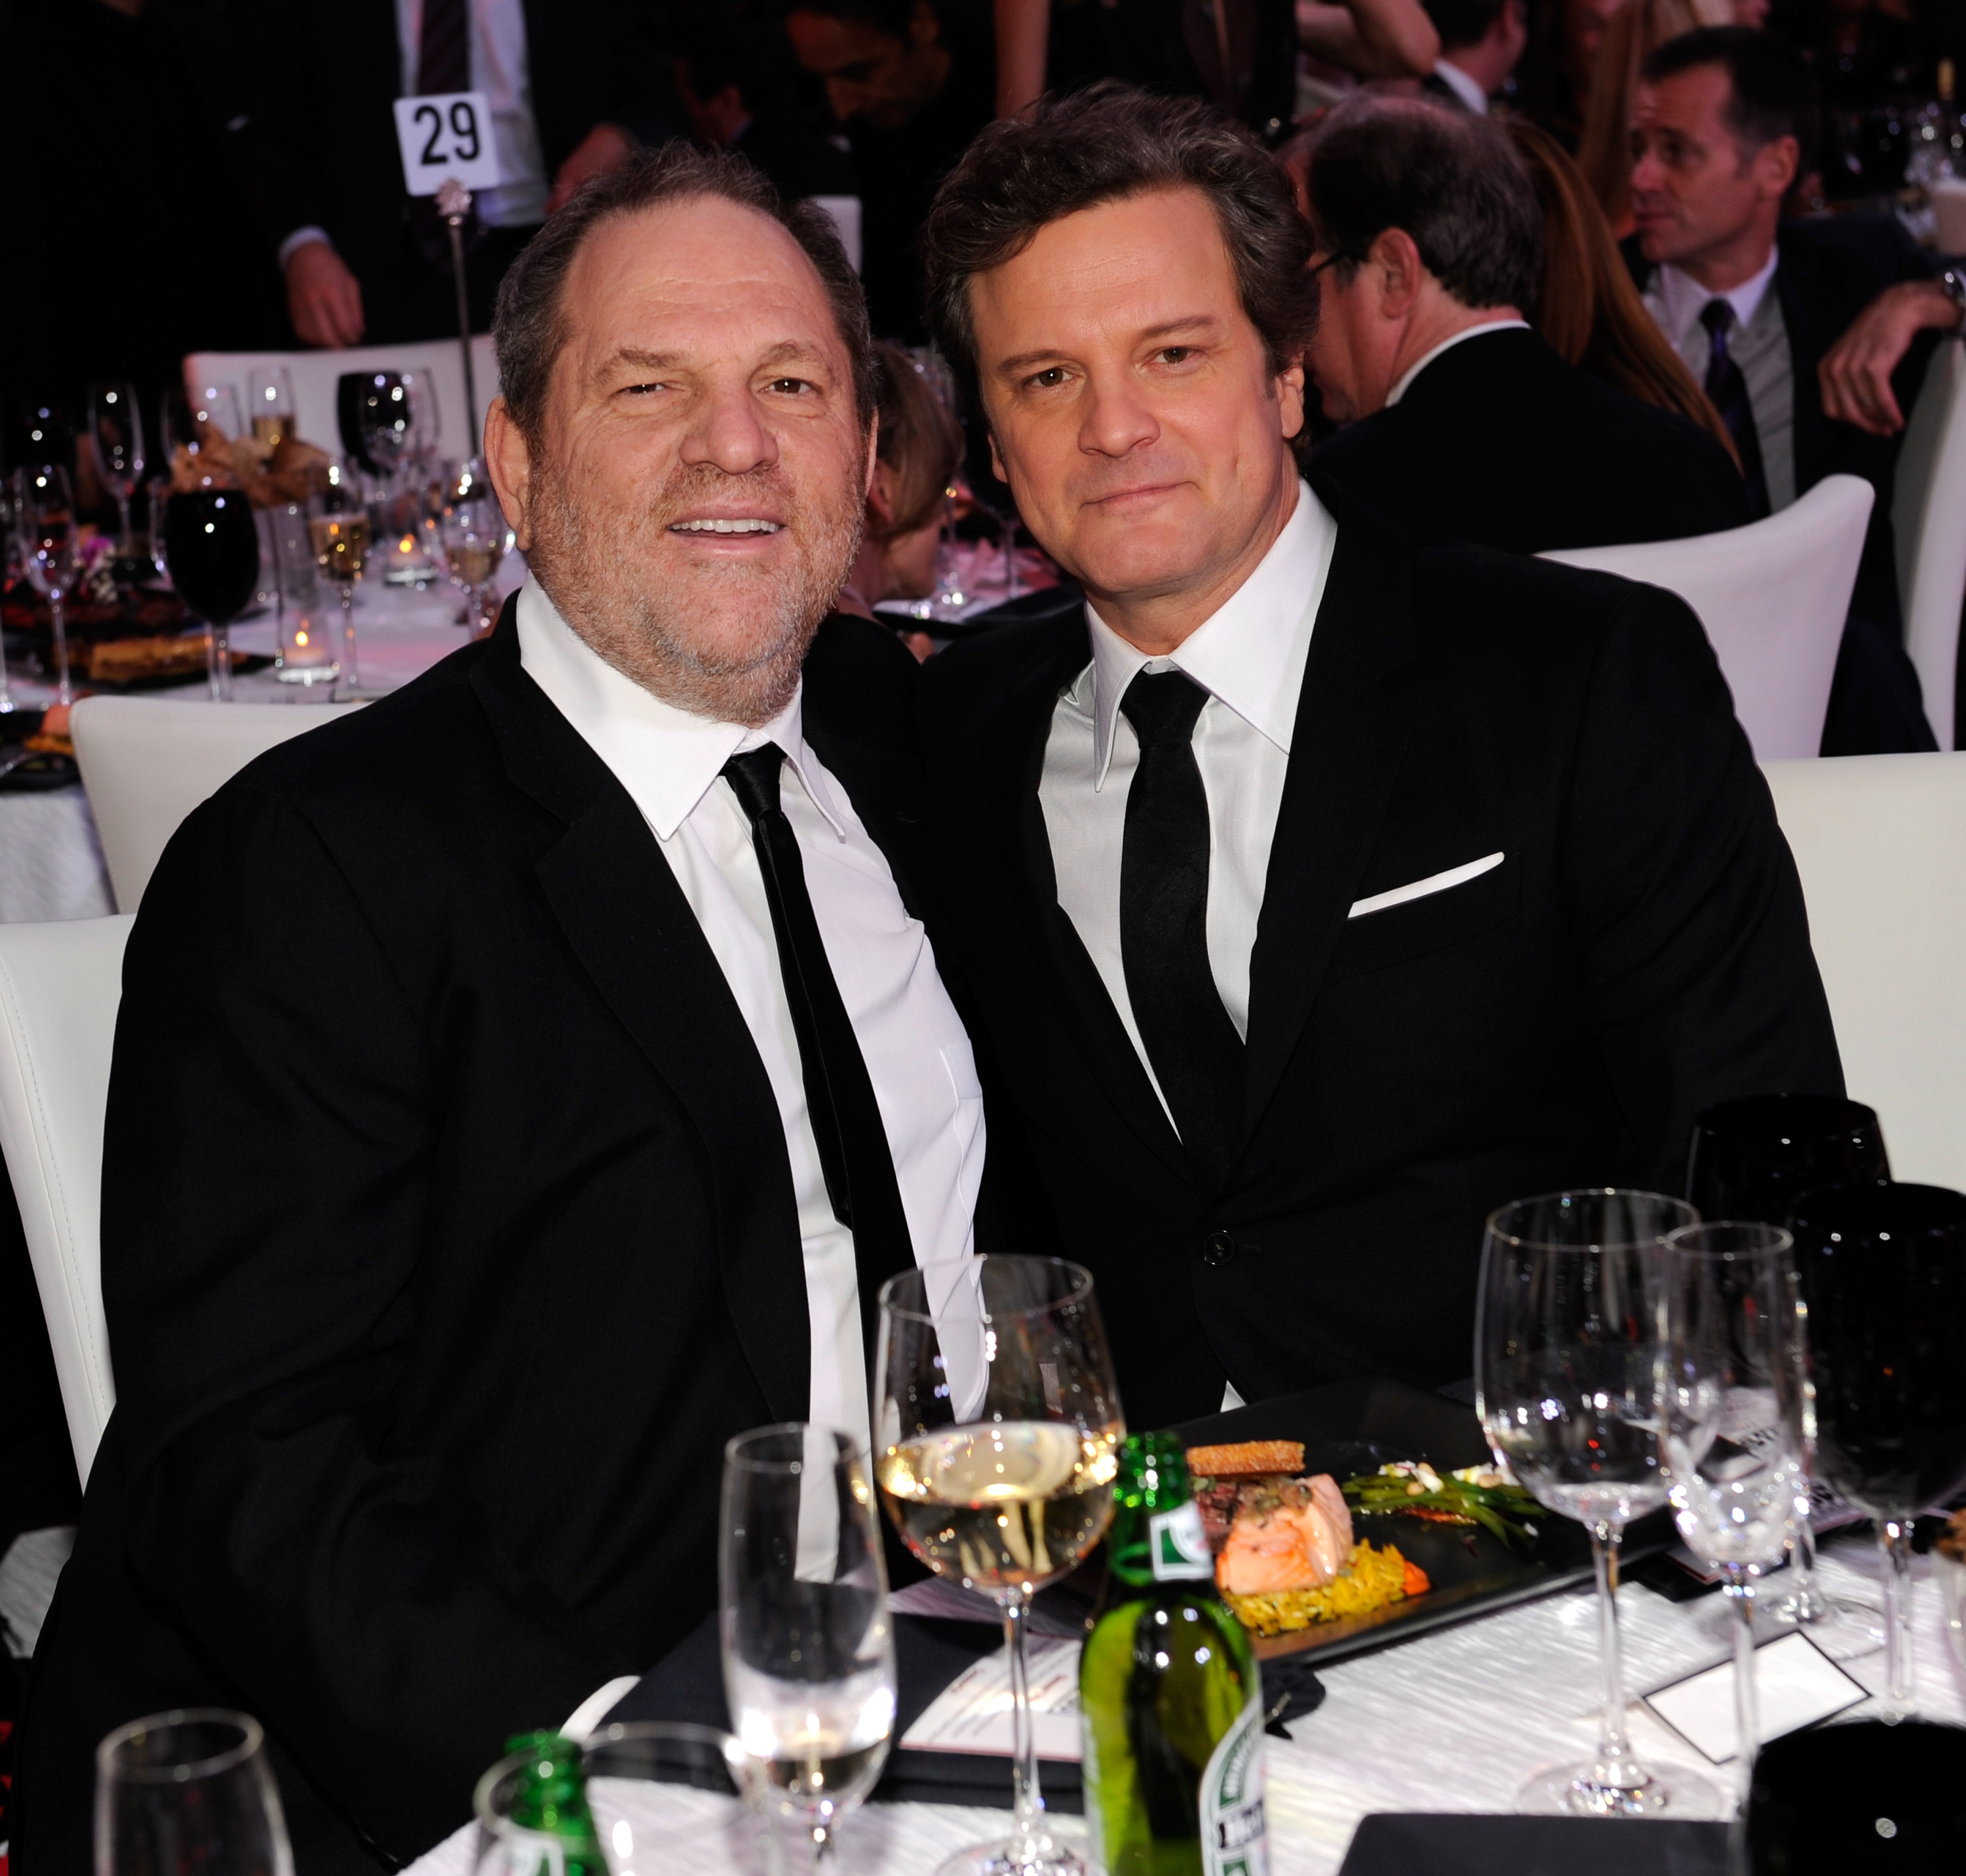 Colin Firth speaks out against Harvey Weinstein: 'He was a frightening man to stand up to'